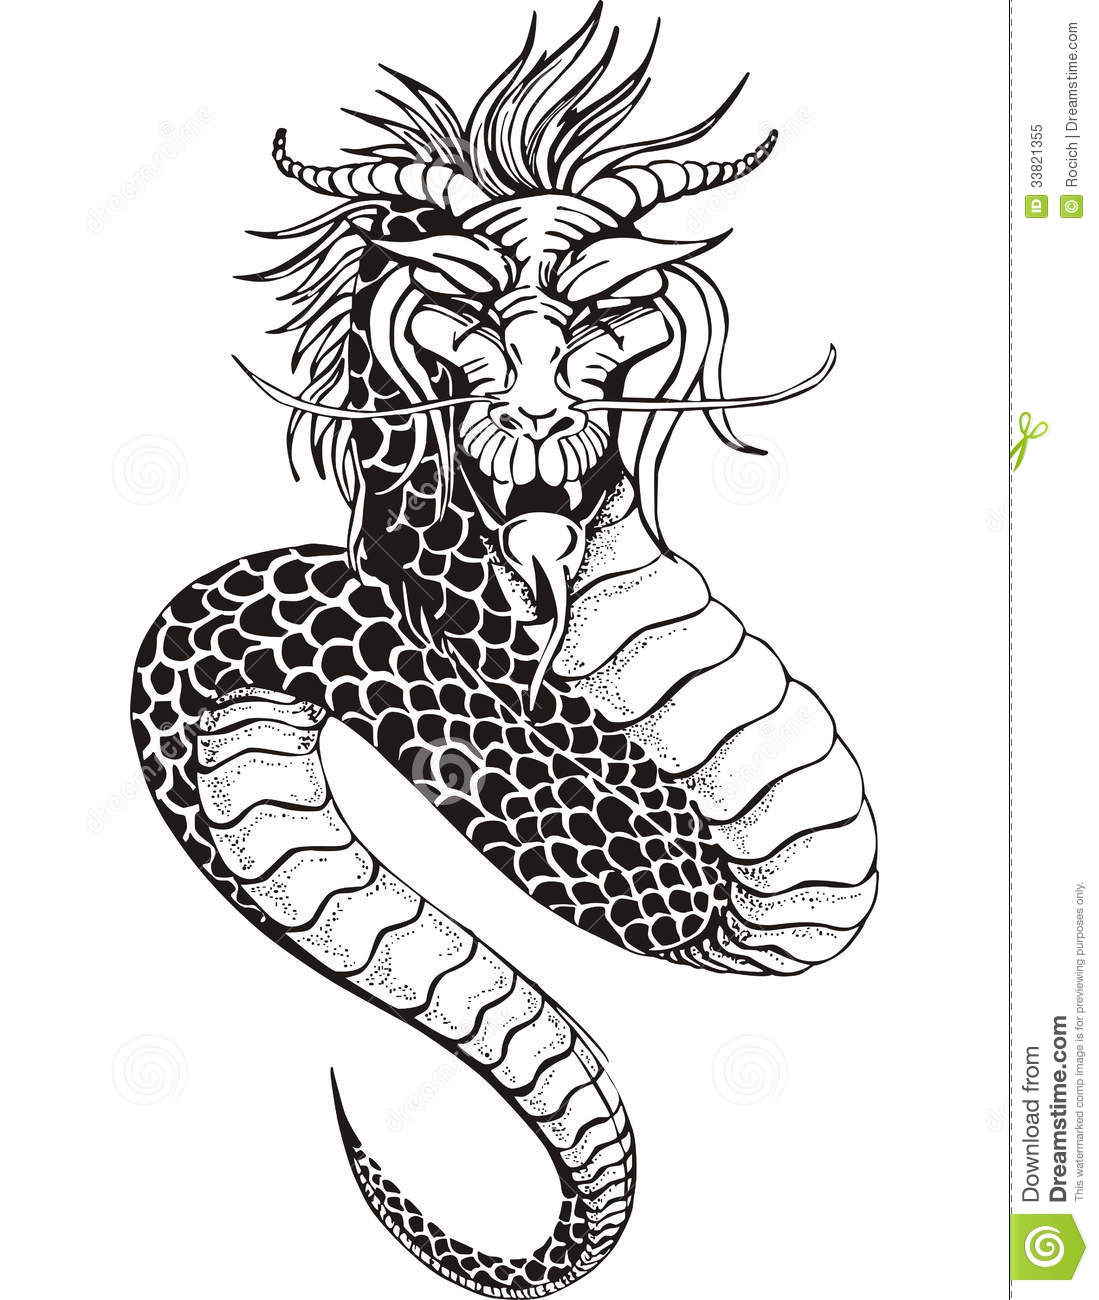 Chinese Dragon Serpent Royalty Free Stock Photo